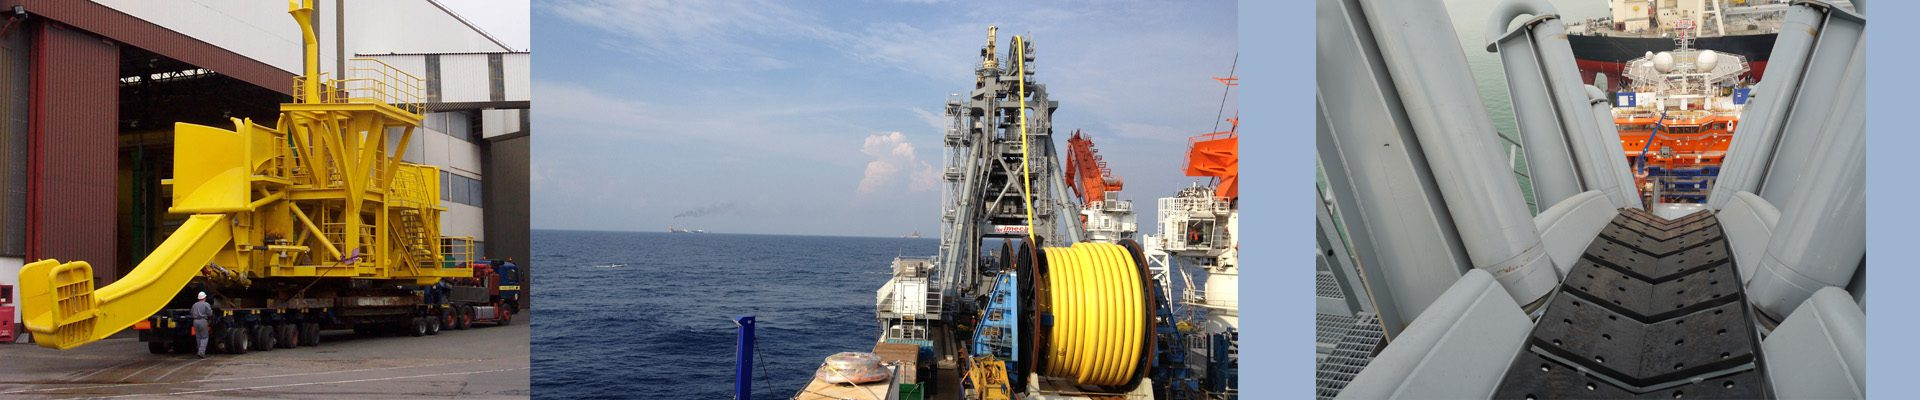 Auxiliary equipment offshore